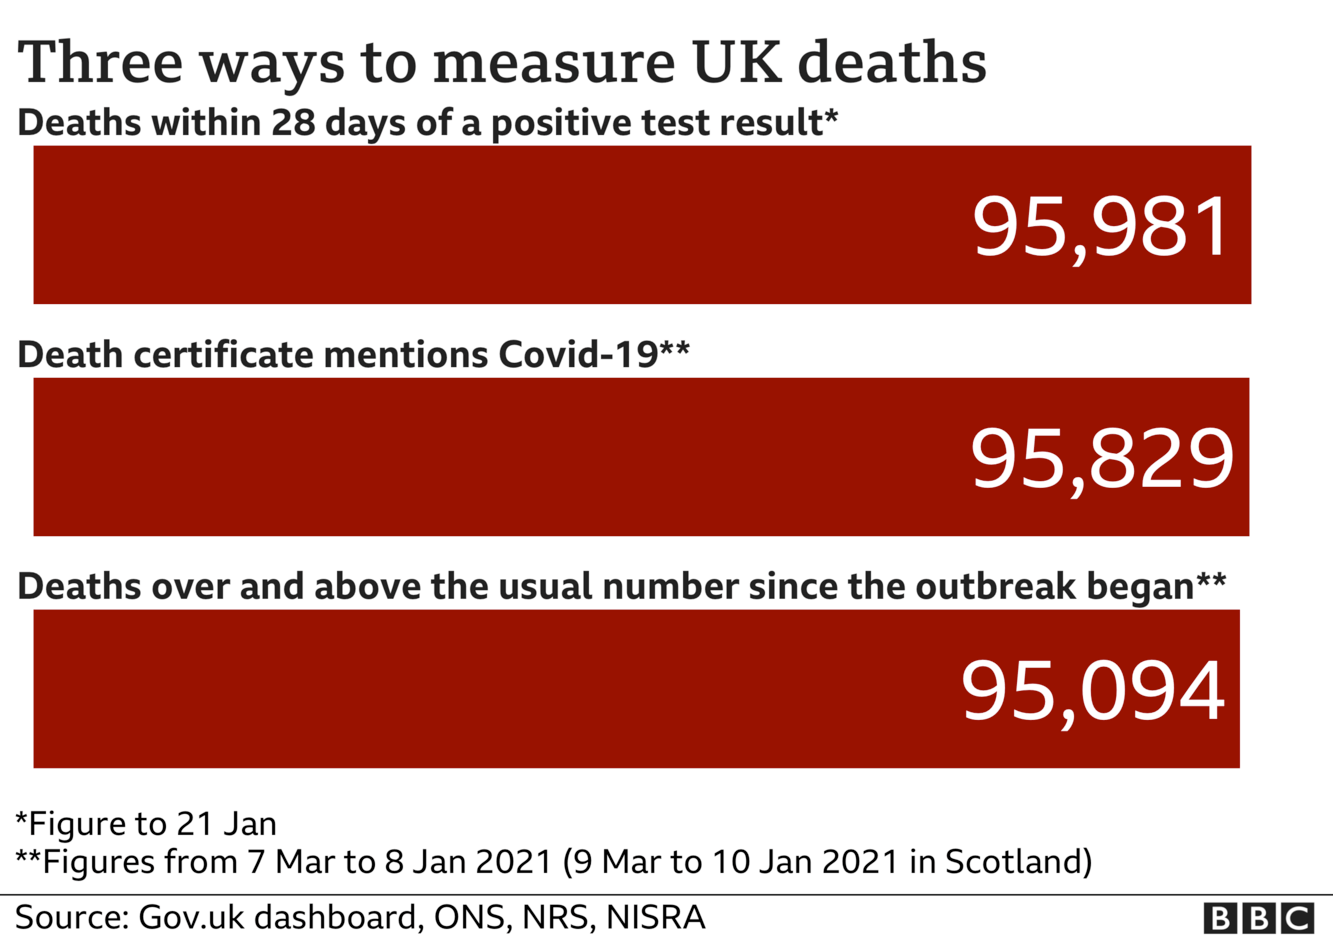 Chart showing three different totals for coronavirus deaths - the government measures all deaths within 28 days of a positive test, that total is 95,981. The ONS includes all deaths where coronavirus was mentioned on the death certificate, that total is 95,829 and the final total includes all deaths over and above the average for the time of year and that total is now 95,094